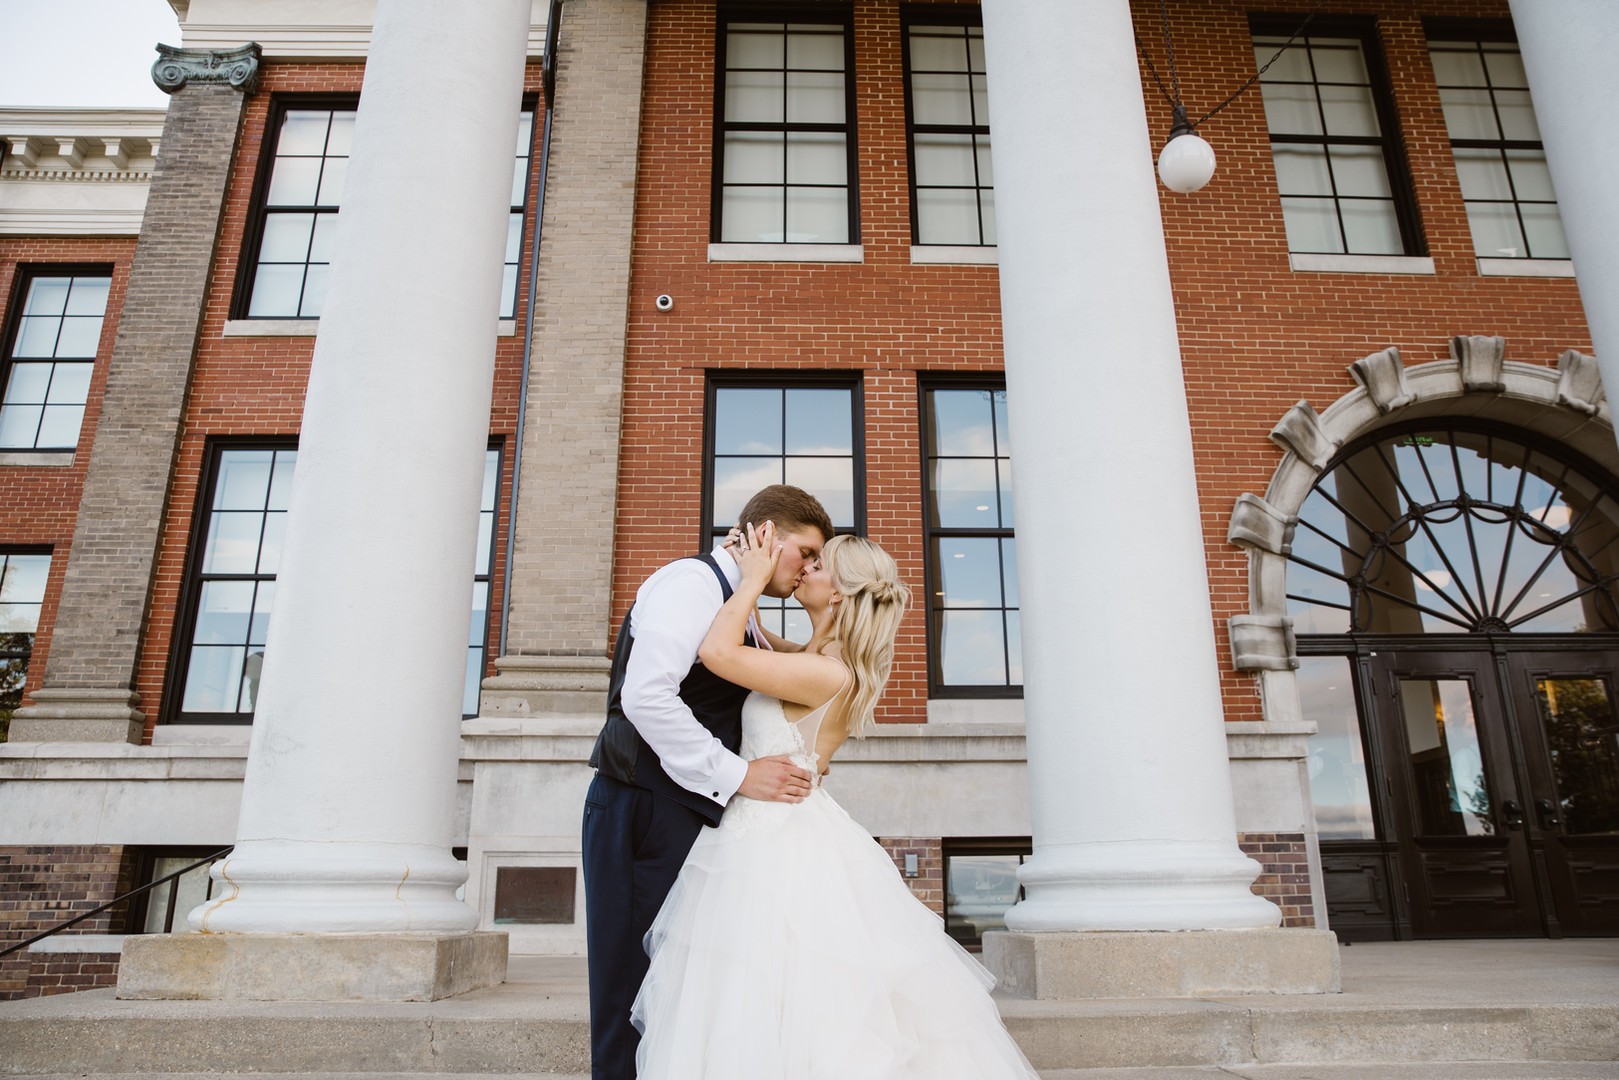 Alissa & Ryan at Heritage Hall